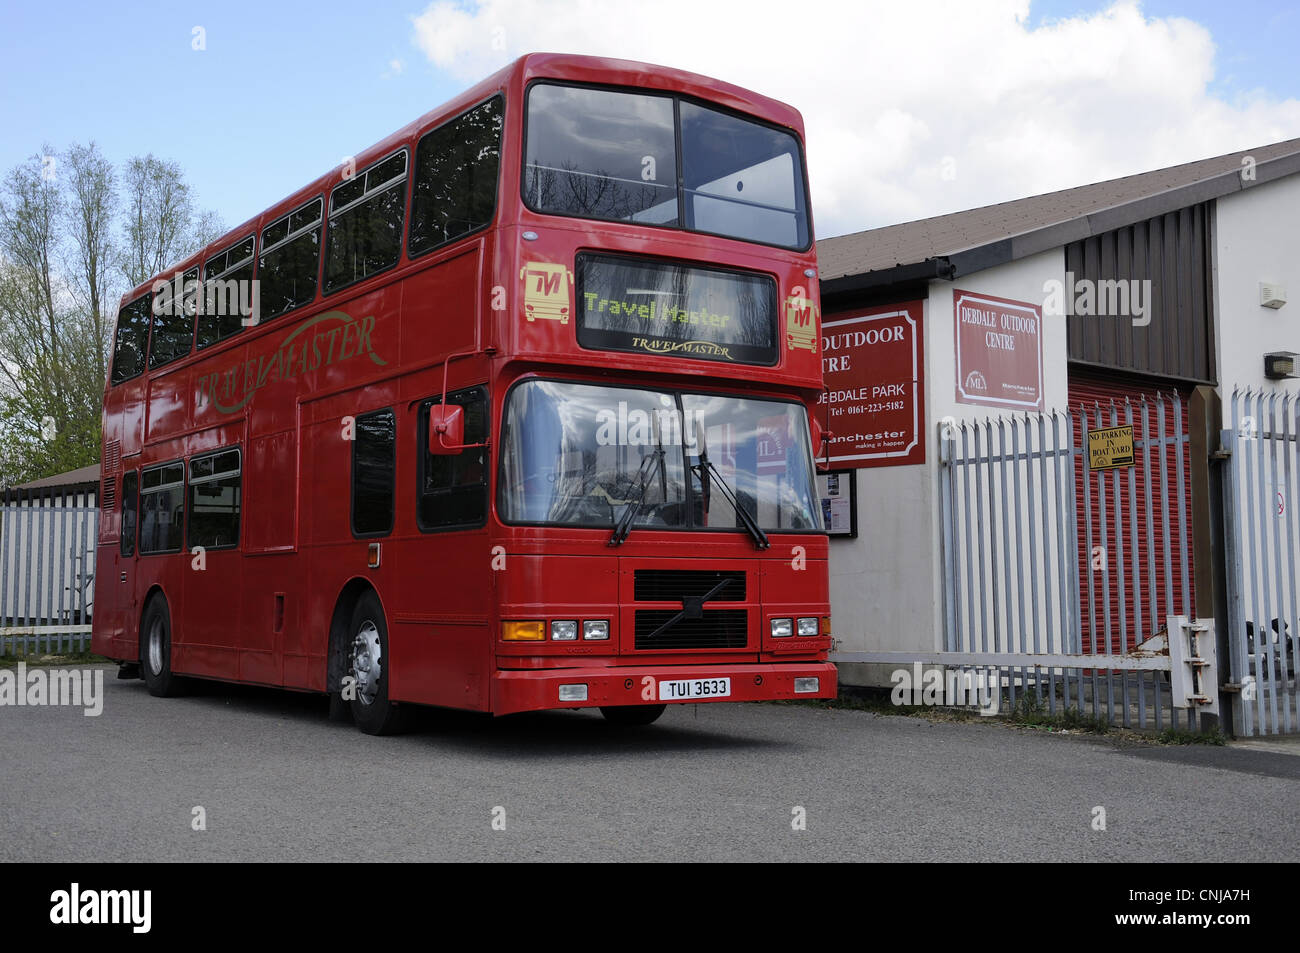 Red double decker Travelmaster bus parked outside Debdale Outdoor Centre in Gorton. - Stock Image